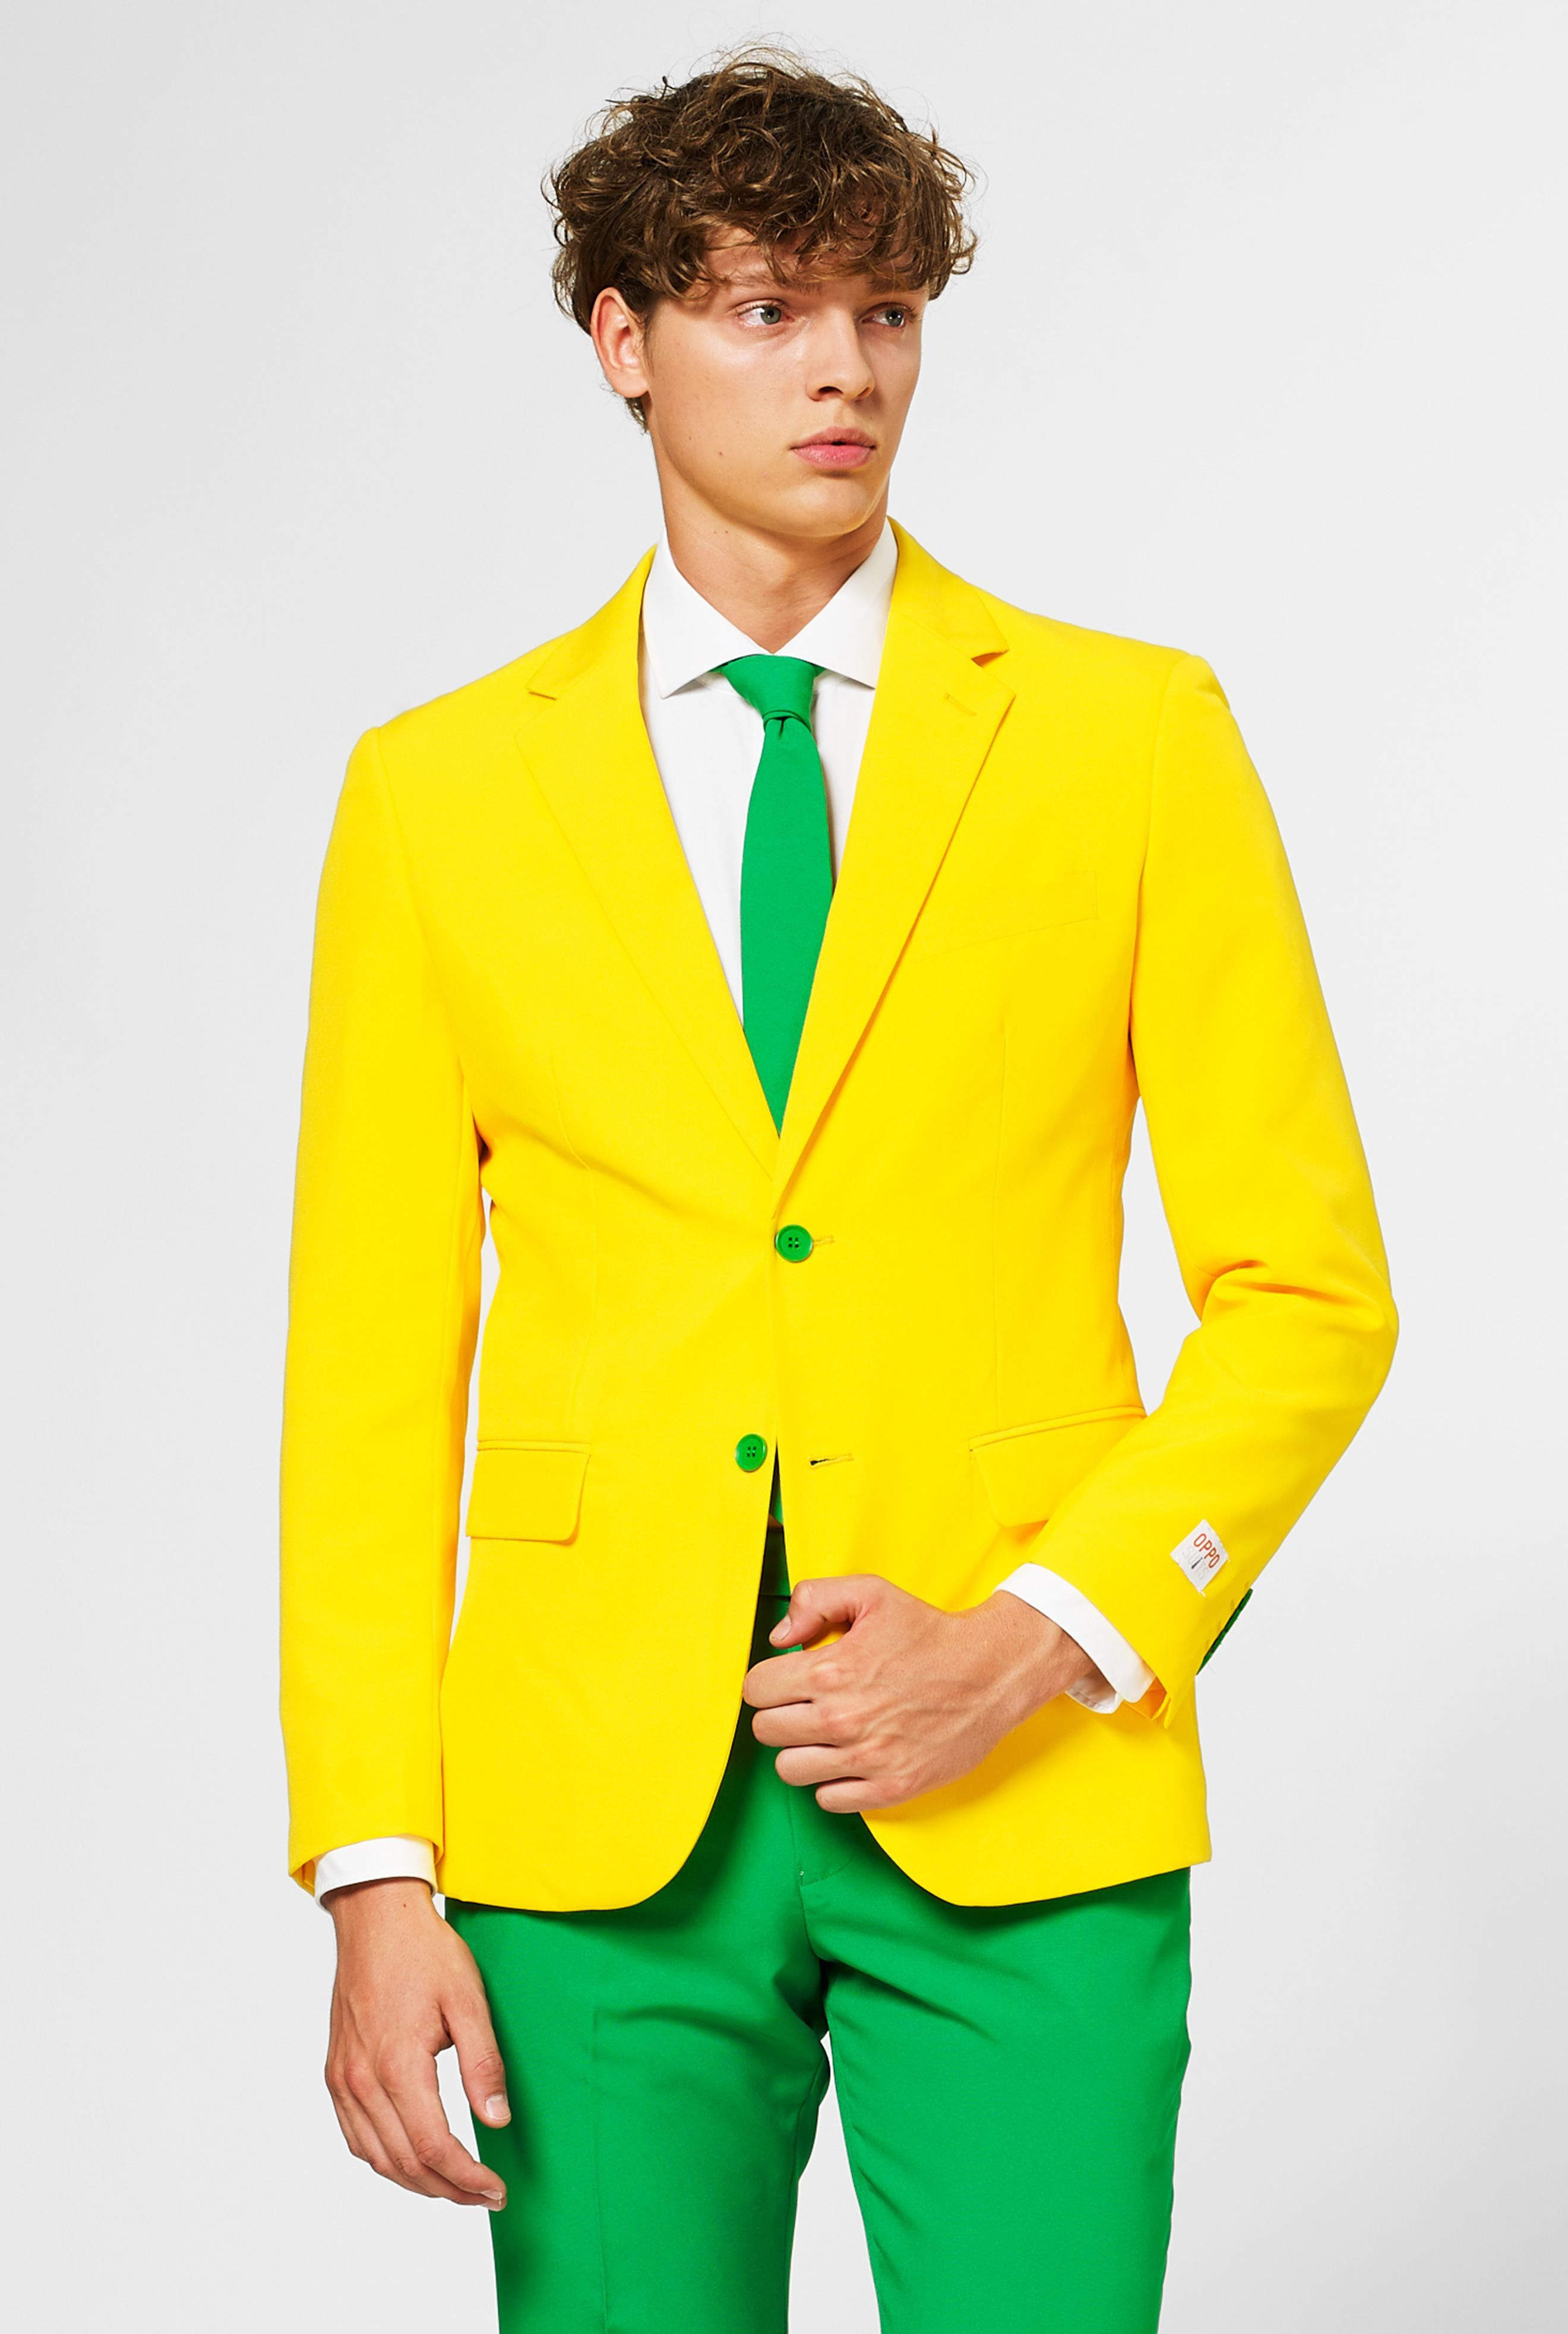 Opposuit - Green and Gold EU58